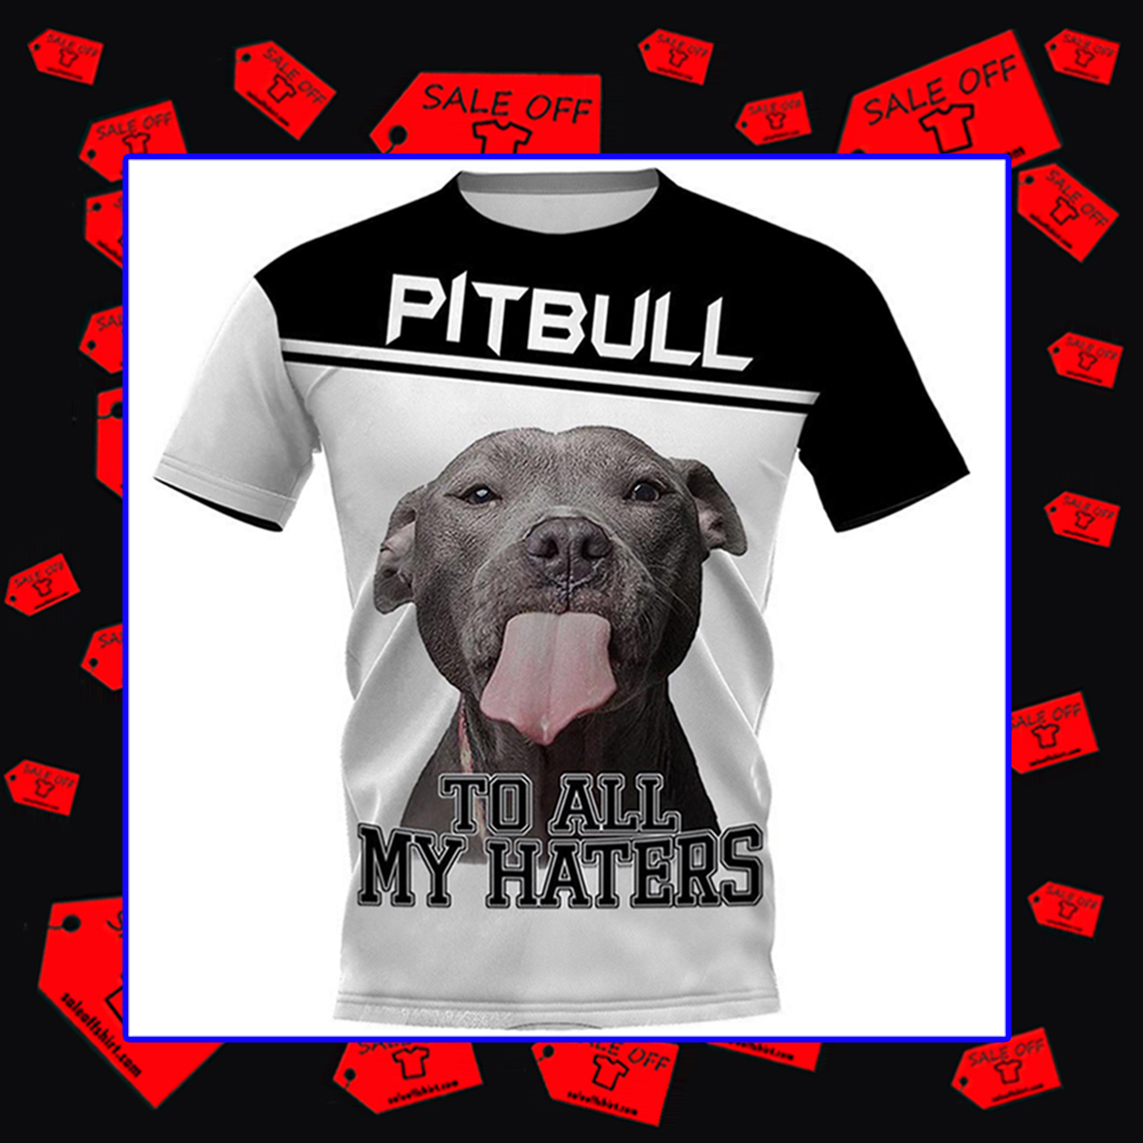 Pitbull To All My Haters T-shirt 3d